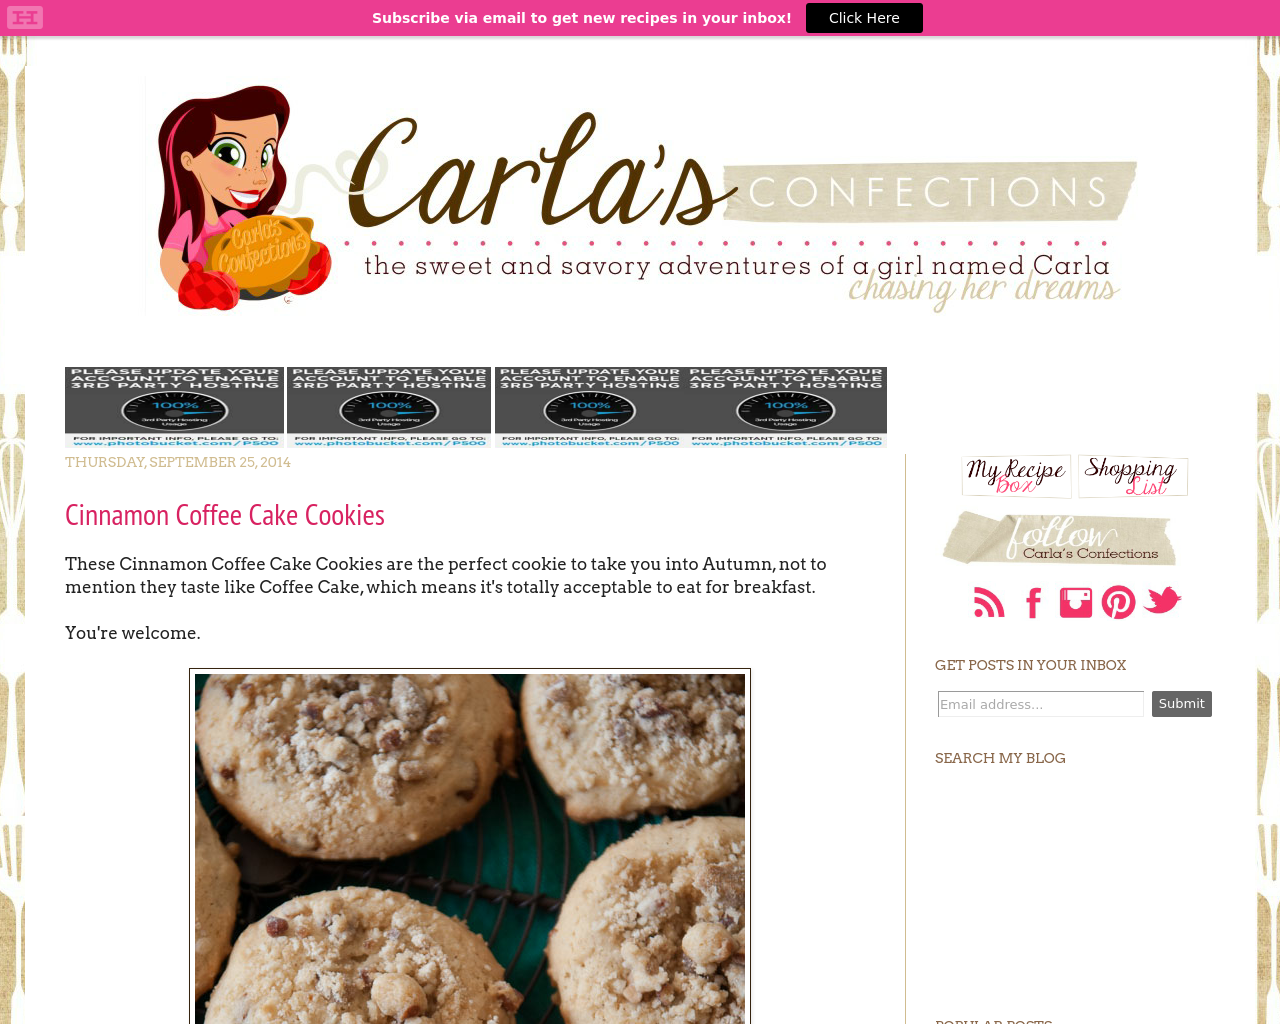 Carla's-Confections-Advertising-Reviews-Pricing